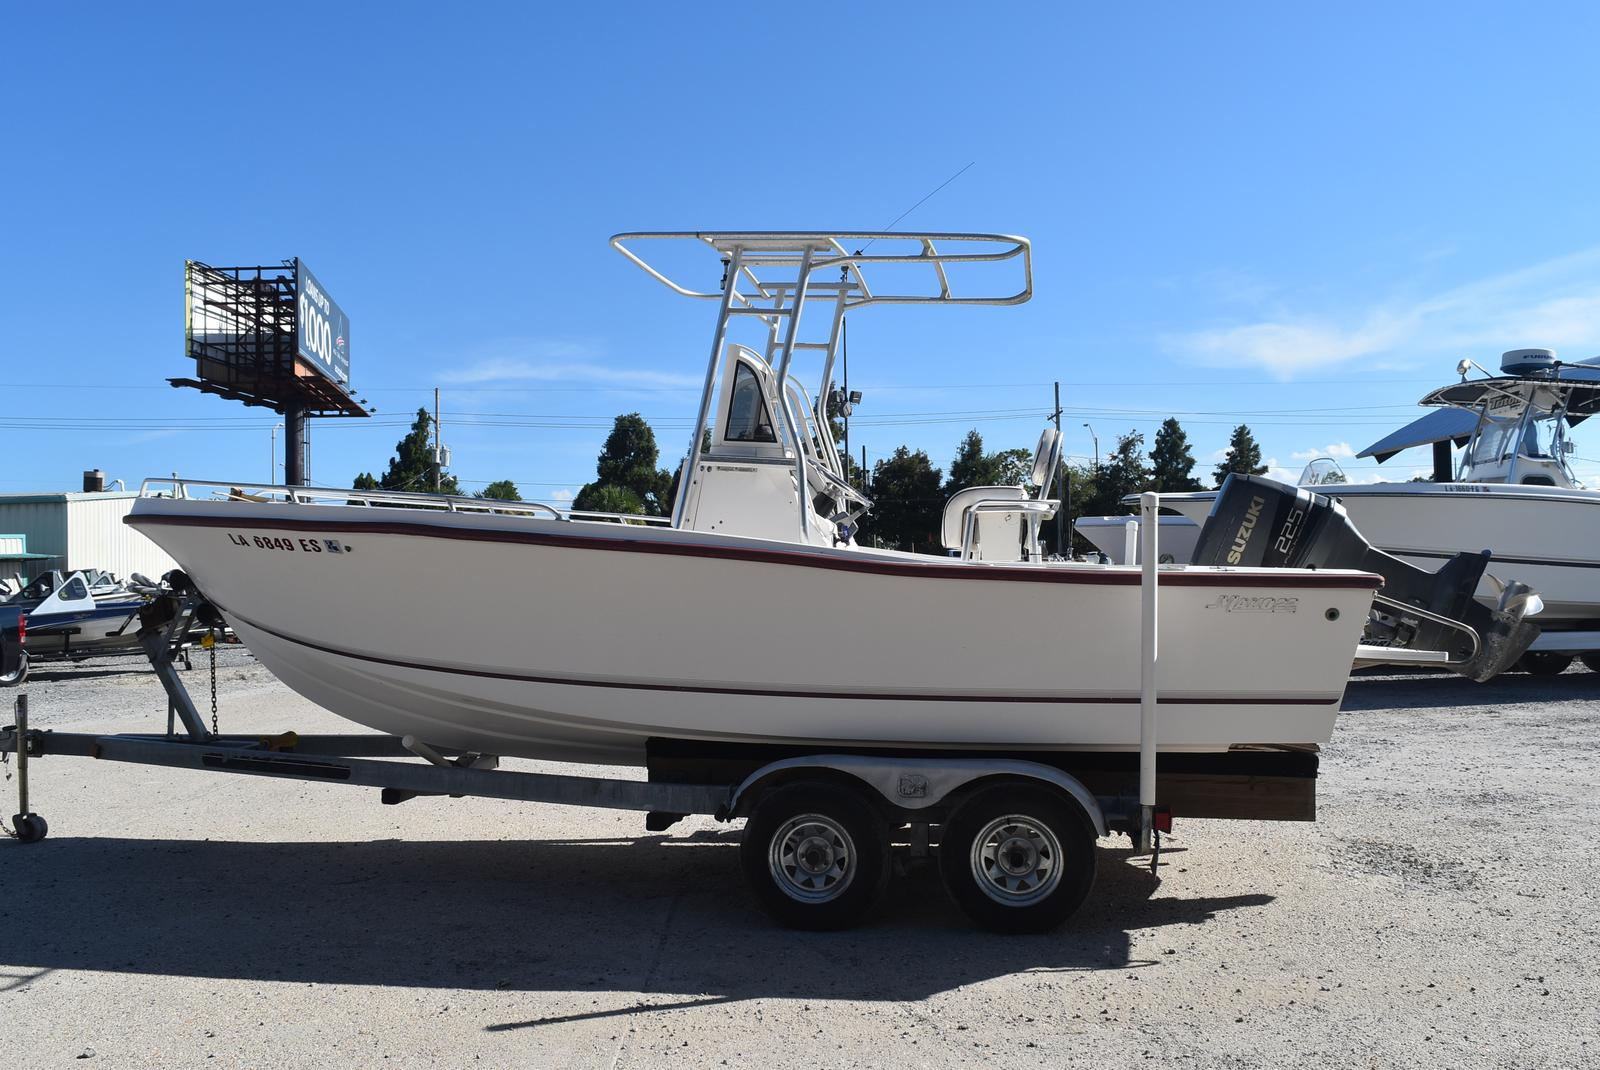 1996 Mako boat for sale, model of the boat is 22 Mako & Image # 226 of 390